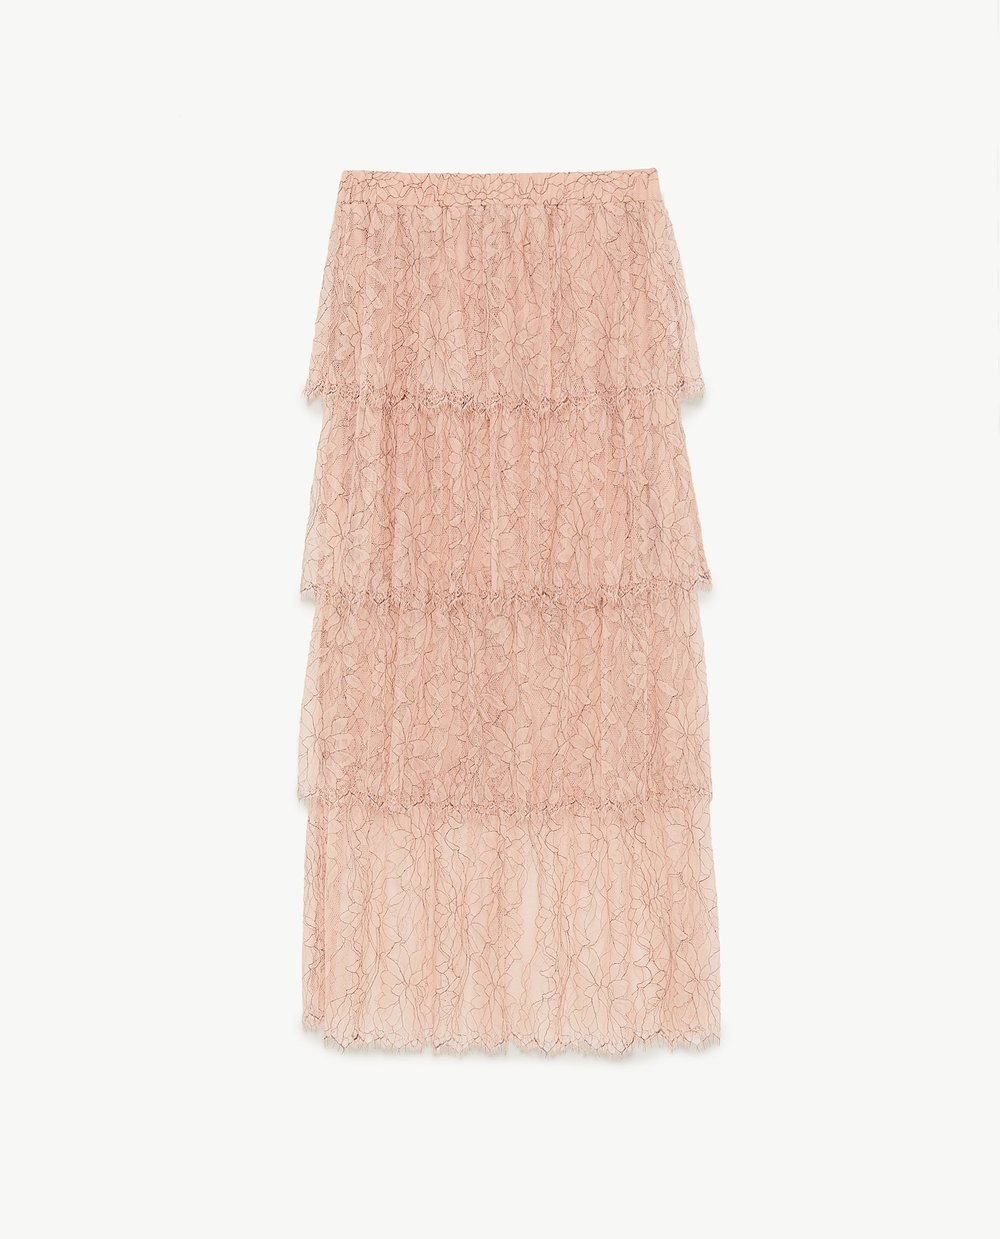 https://www.zara.com/ca/en/long-ruffled-lace-skirt-p07901010.html?v1=5517030&v2=1029504